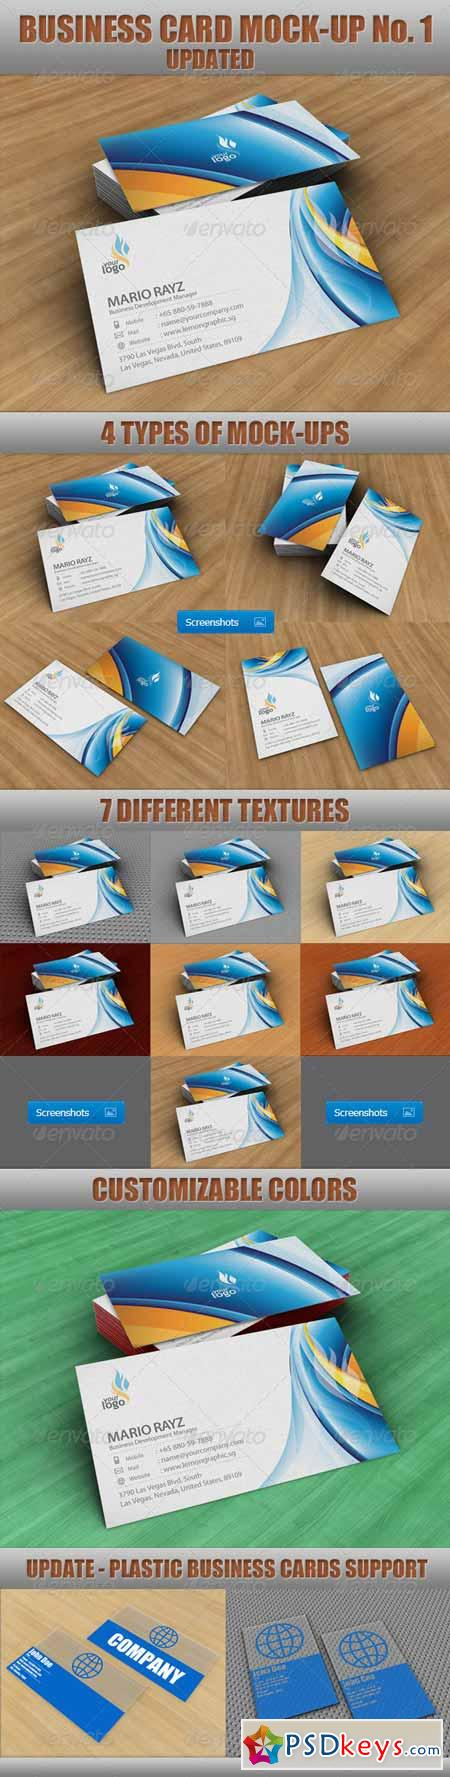 Mock up page 132 free download photoshop vector stock image via business card mock up no1 510962 reheart Images